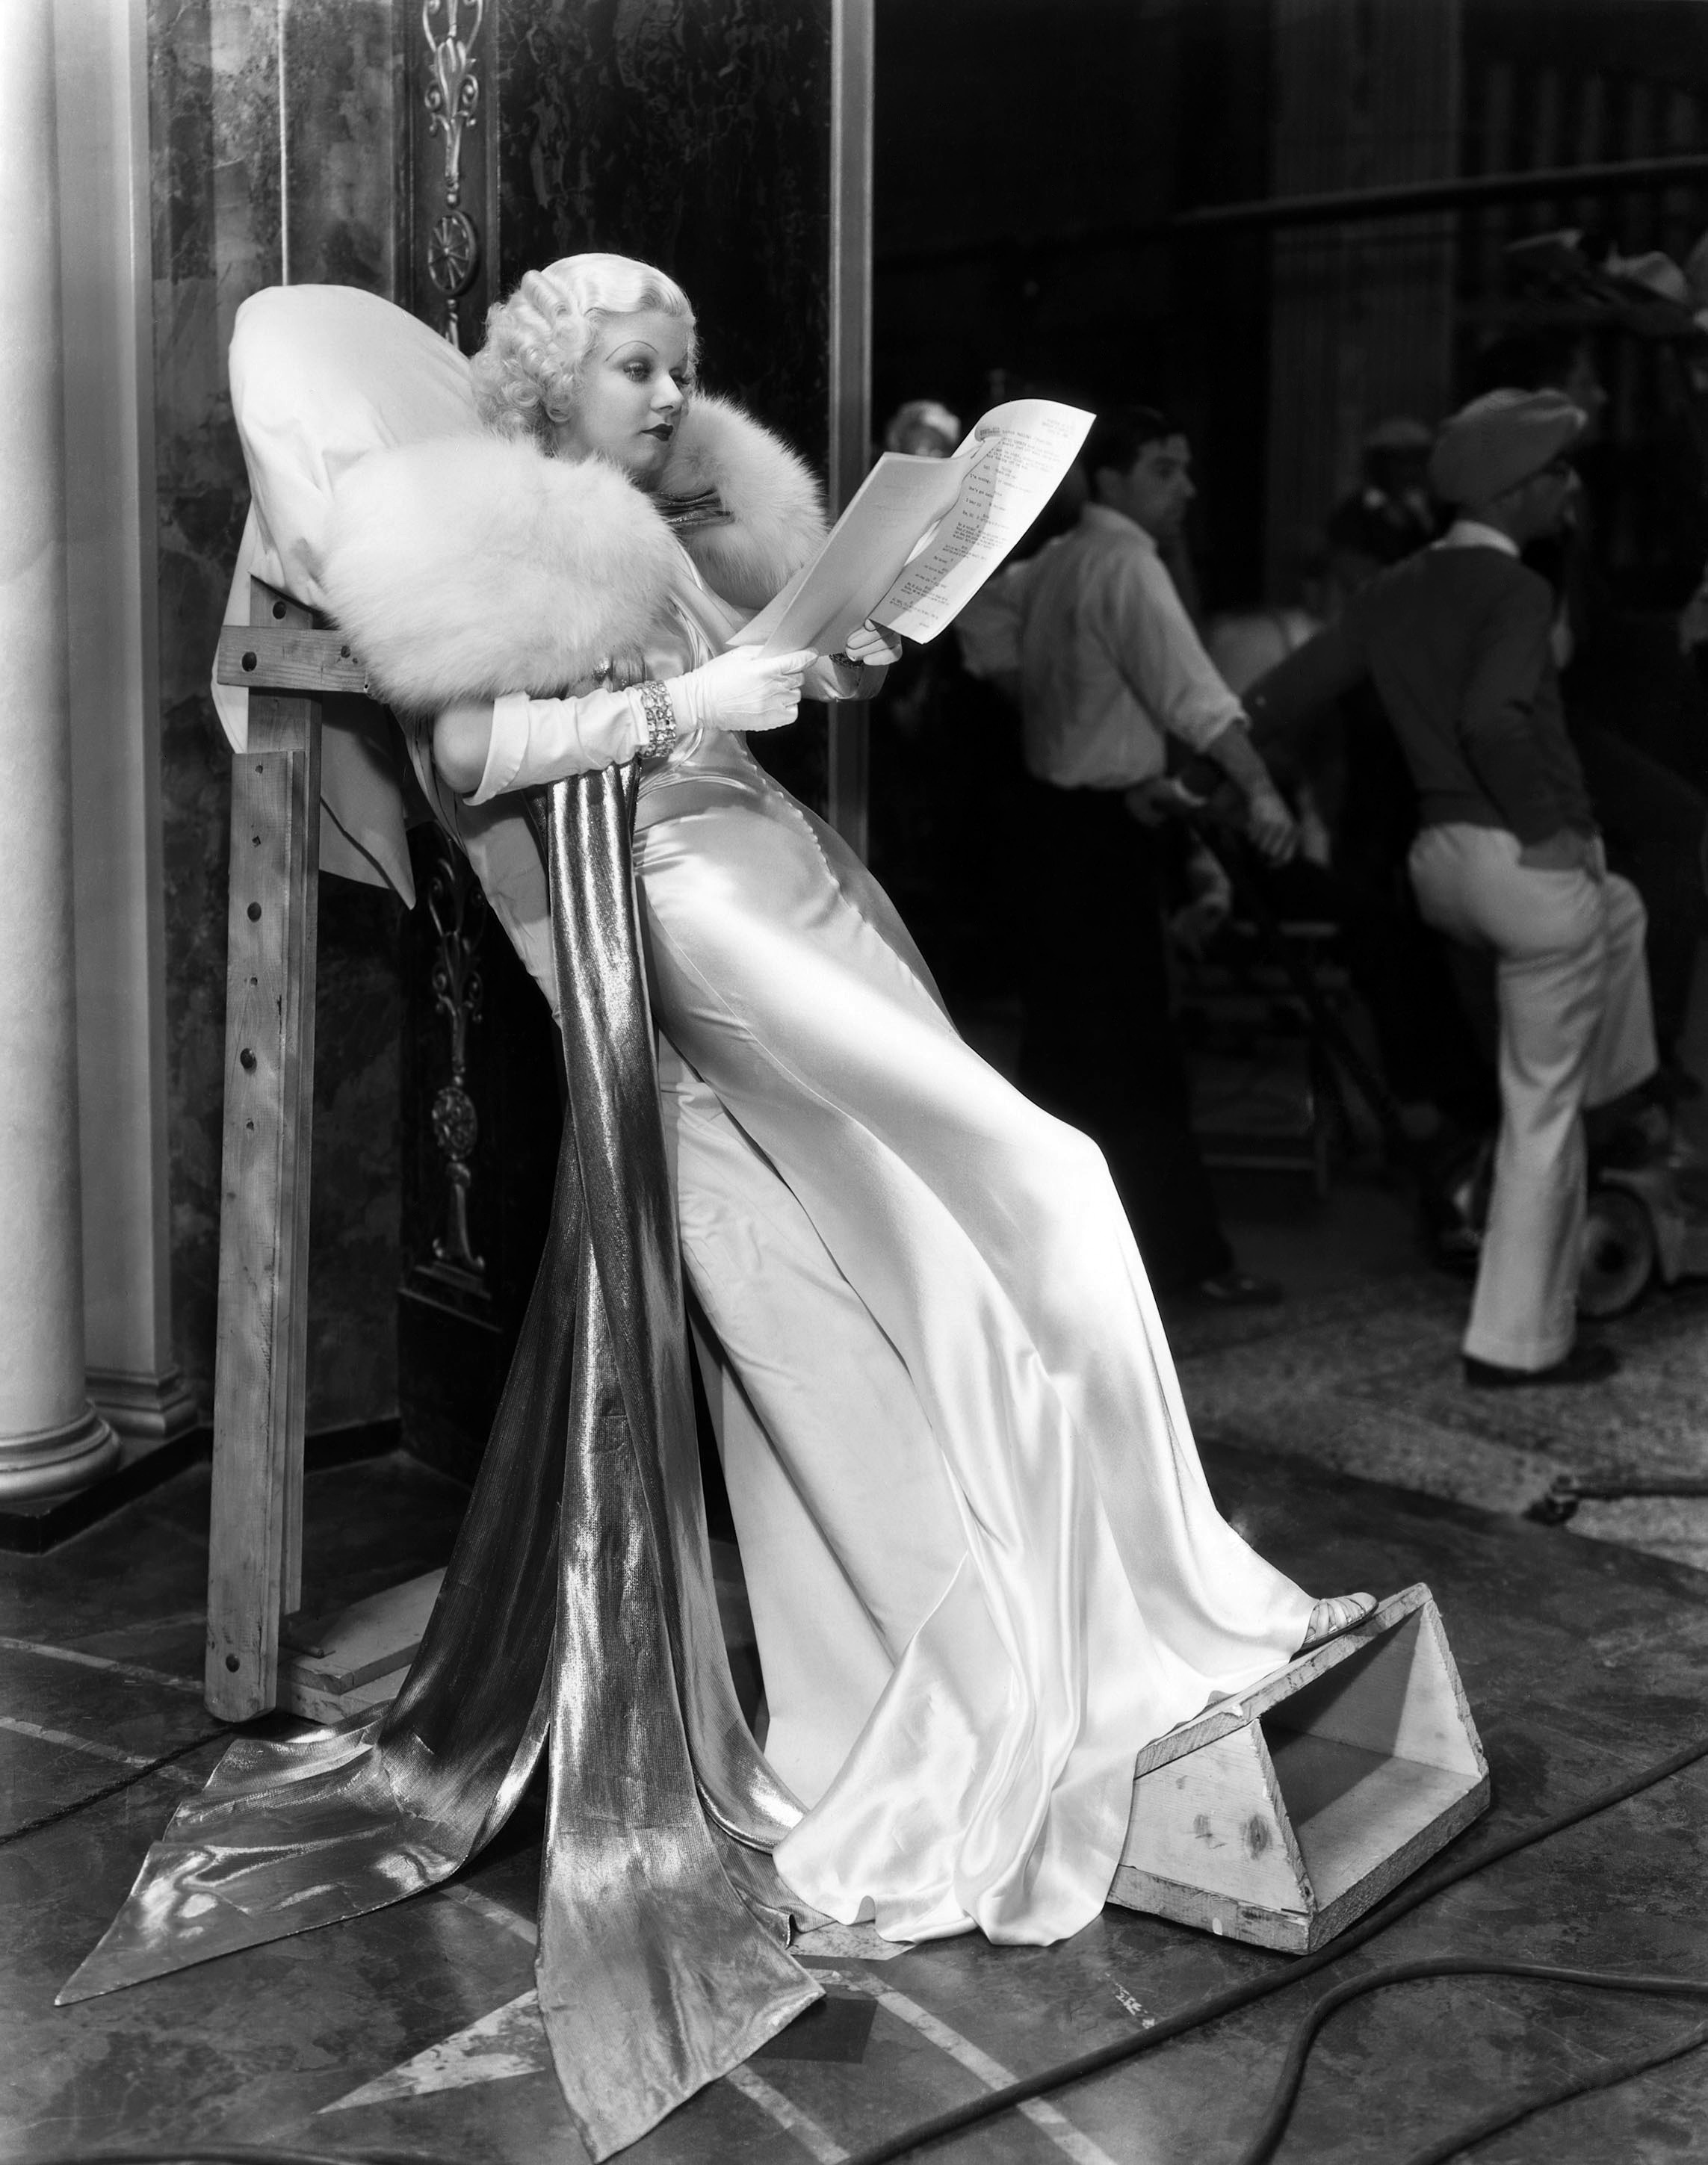 jean harlow dressjean harlow dress, jean harlow cadillac, jean harlow robert taylor, jean harlow movies, jean harlow book, jean harlow find a grave, jean harlow style, jean harlow instagram, jean harlow aviator, jean harlow blog, jean harlow saratoga, jean harlow tumblr, jean harlow, jean harlow death, jean harlow quotes, jean harlow biography, jean harlow wiki, jean harlow and william powell, jean harlow cause of death, jean harlow wikipedia